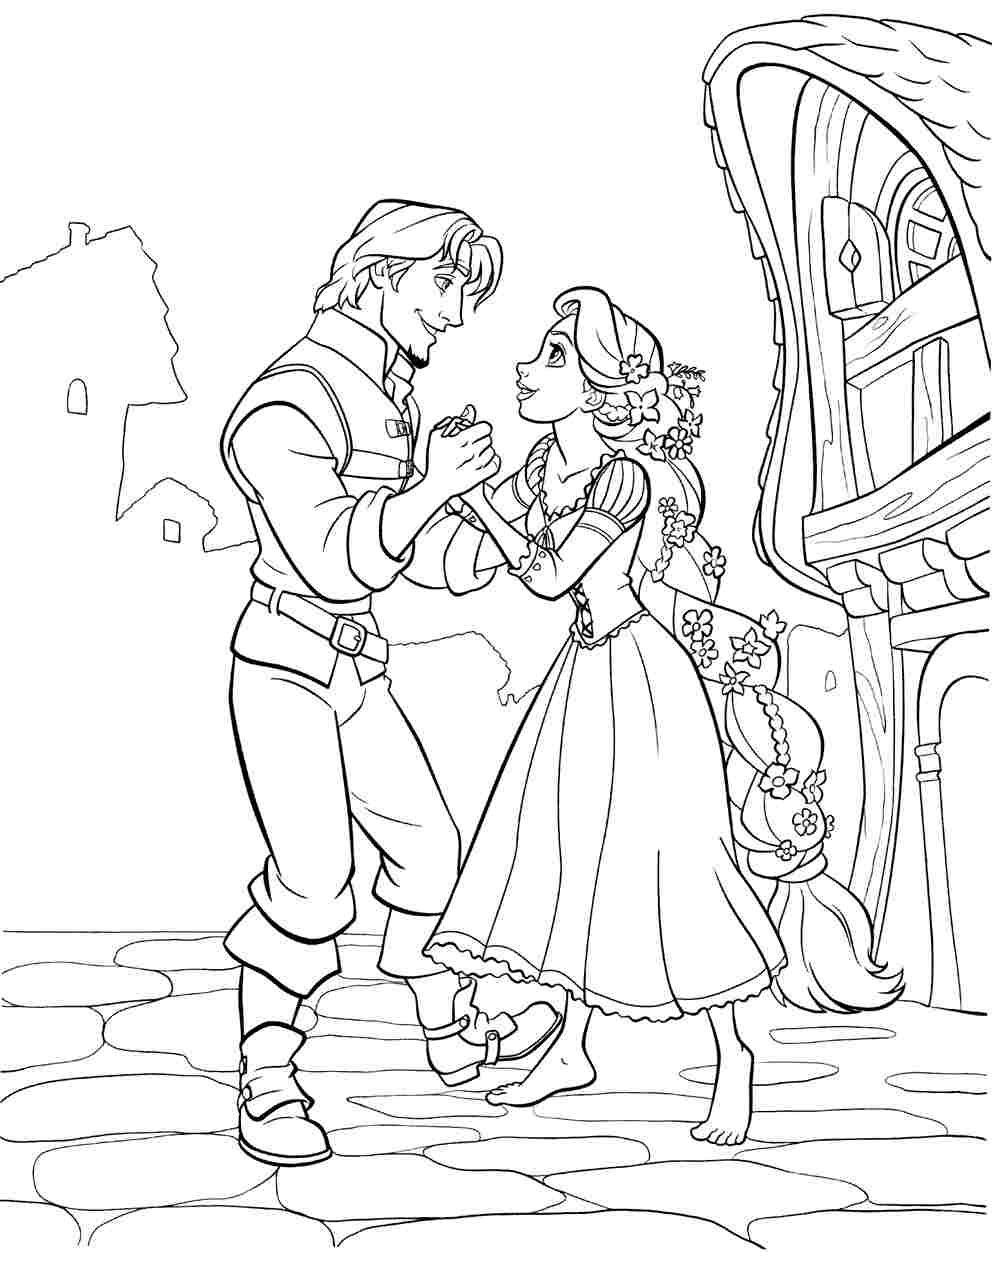 disney princess tangled rapunzel coloring sheets free printable ...